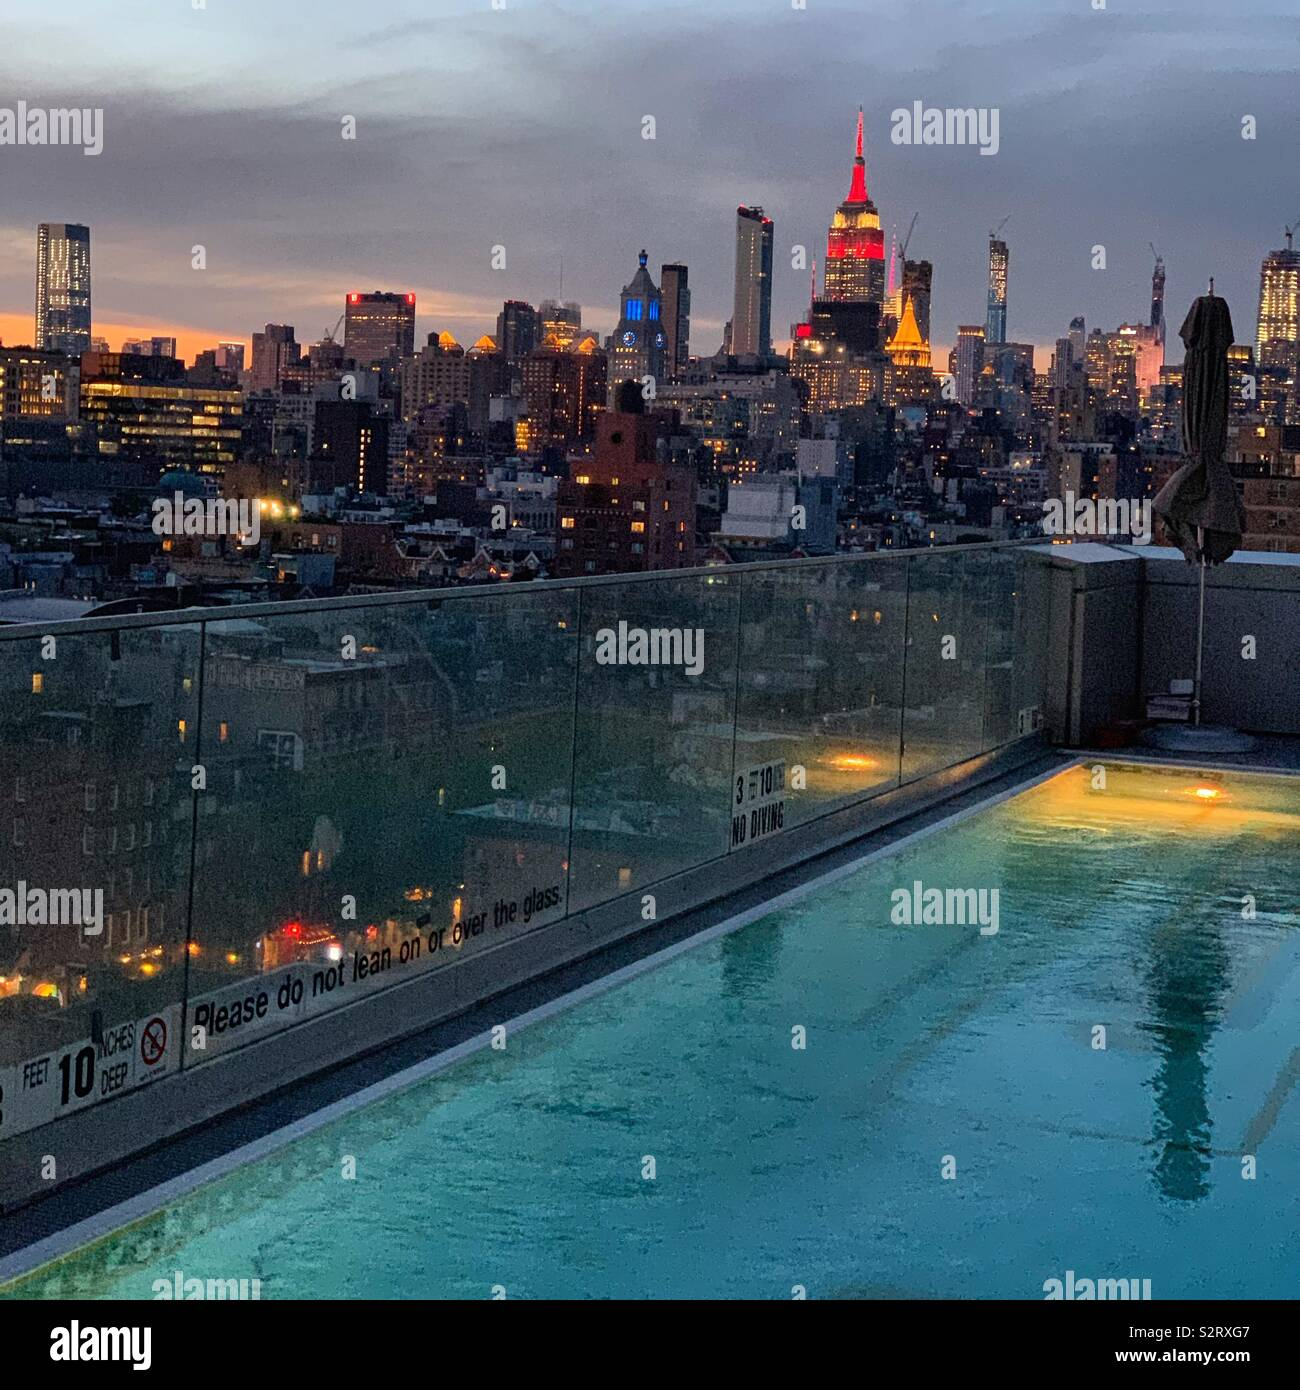 Early evening at the pool at the Hotel Indigo Lower East Side, New York City - Stock Image